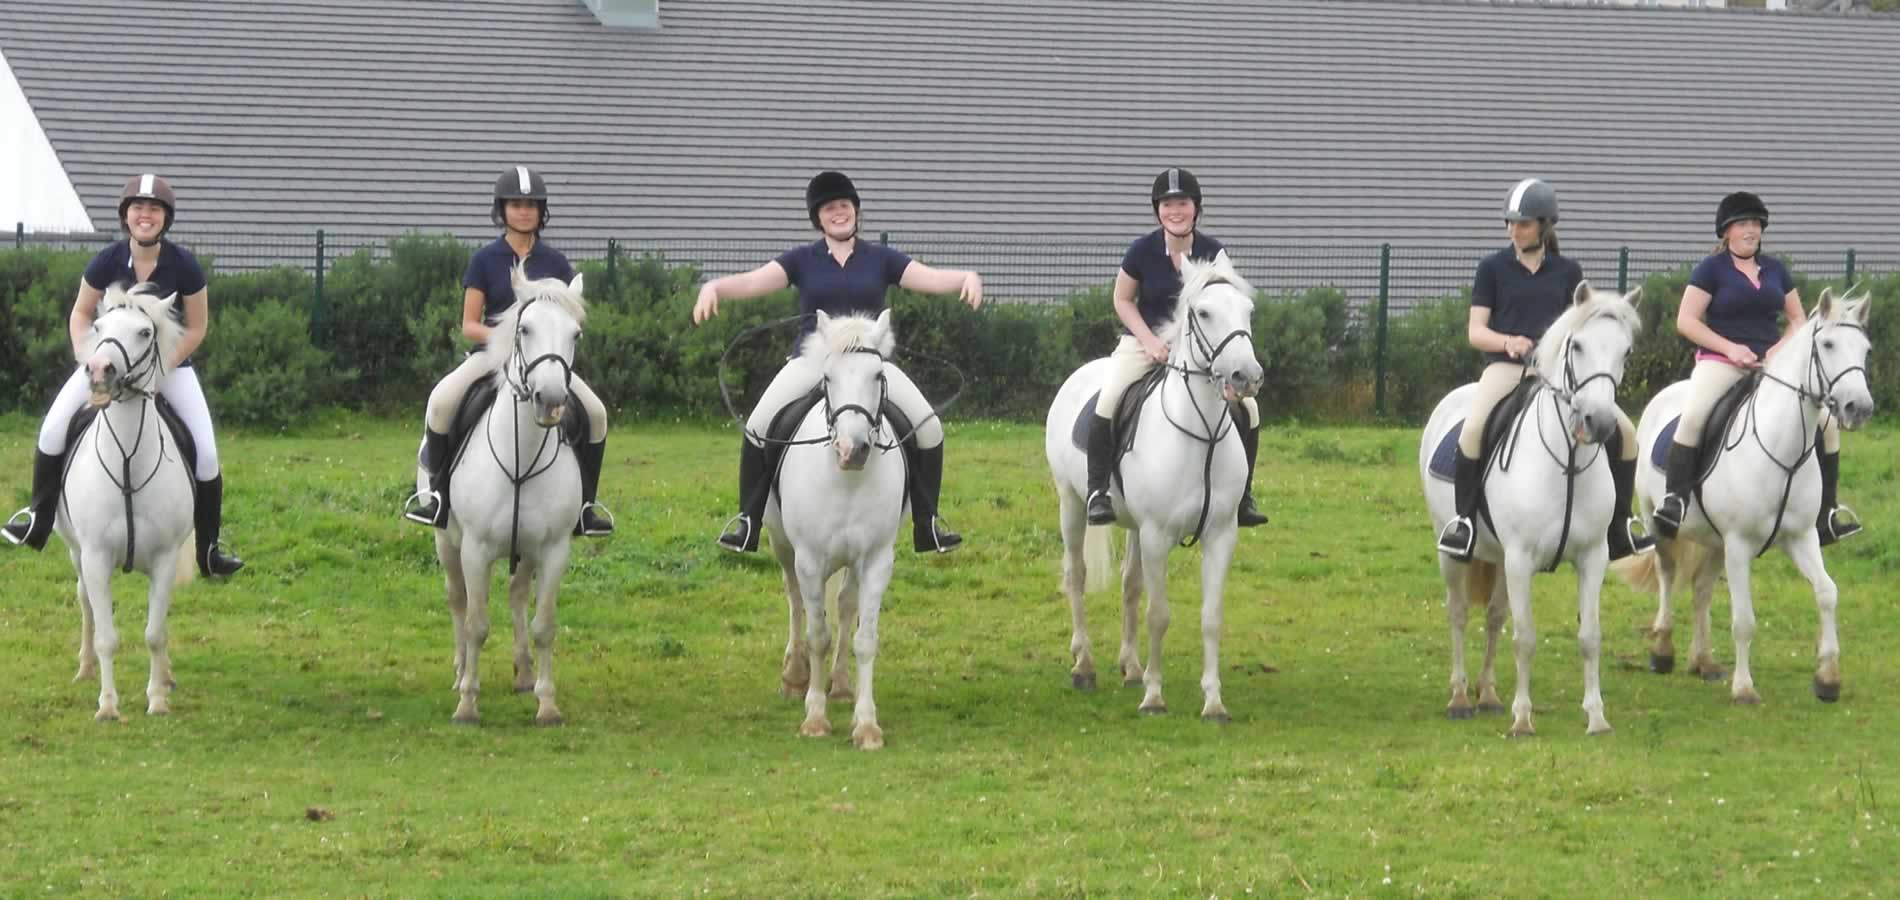 girls-on-horse-dingle